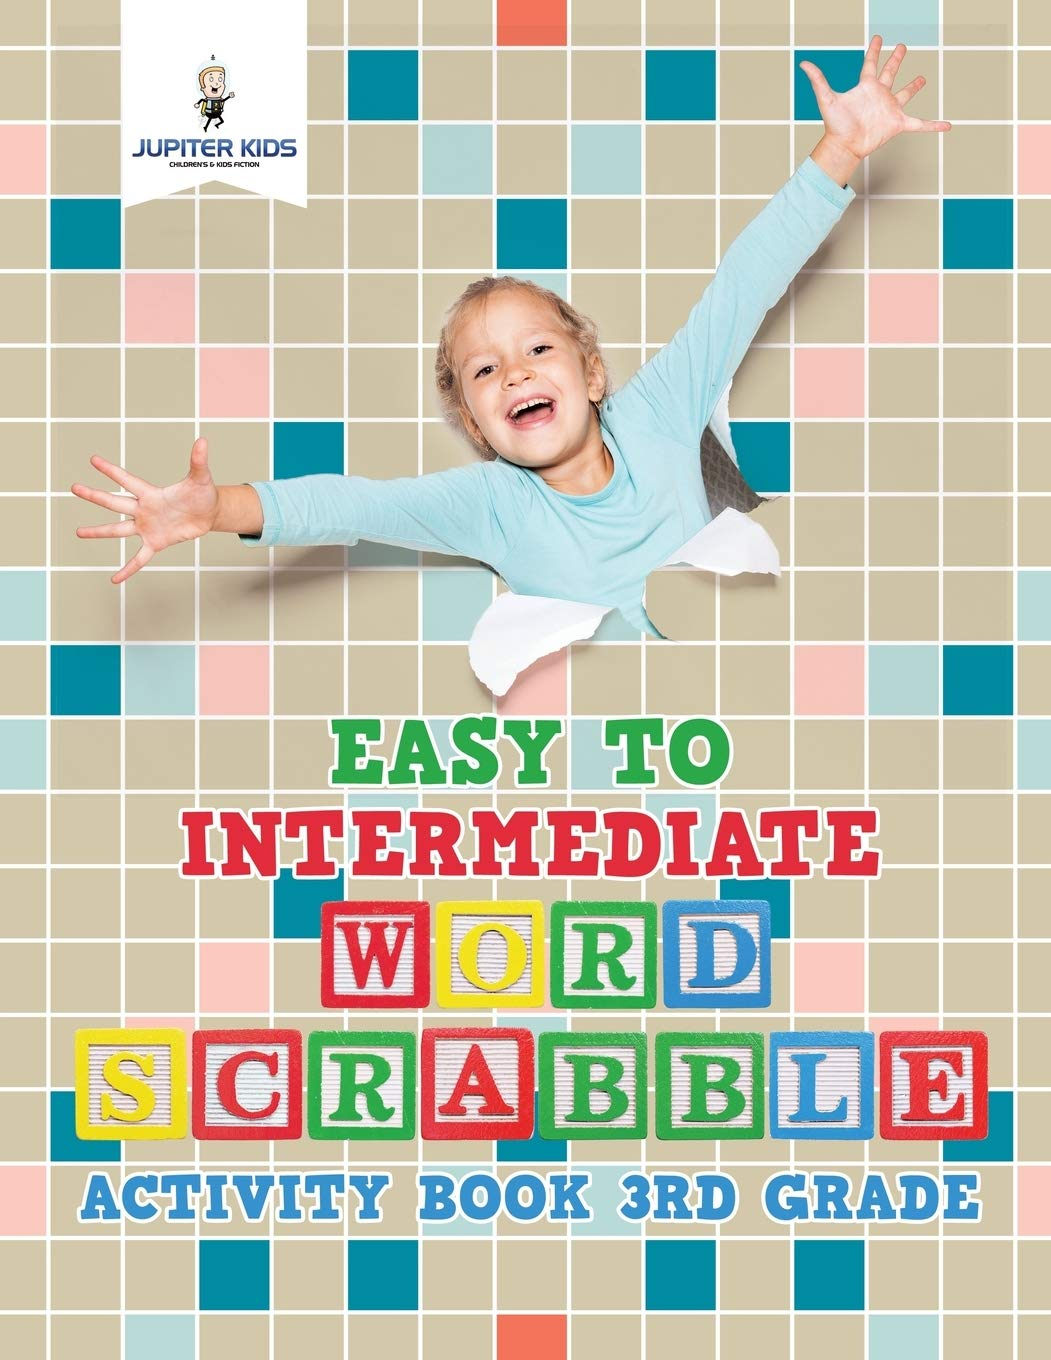 Easy to Intermediate Word Scrabble Activity Book 3rd Grade: Amazon.es: Kids, Jupiter: Libros en idiomas extranjeros